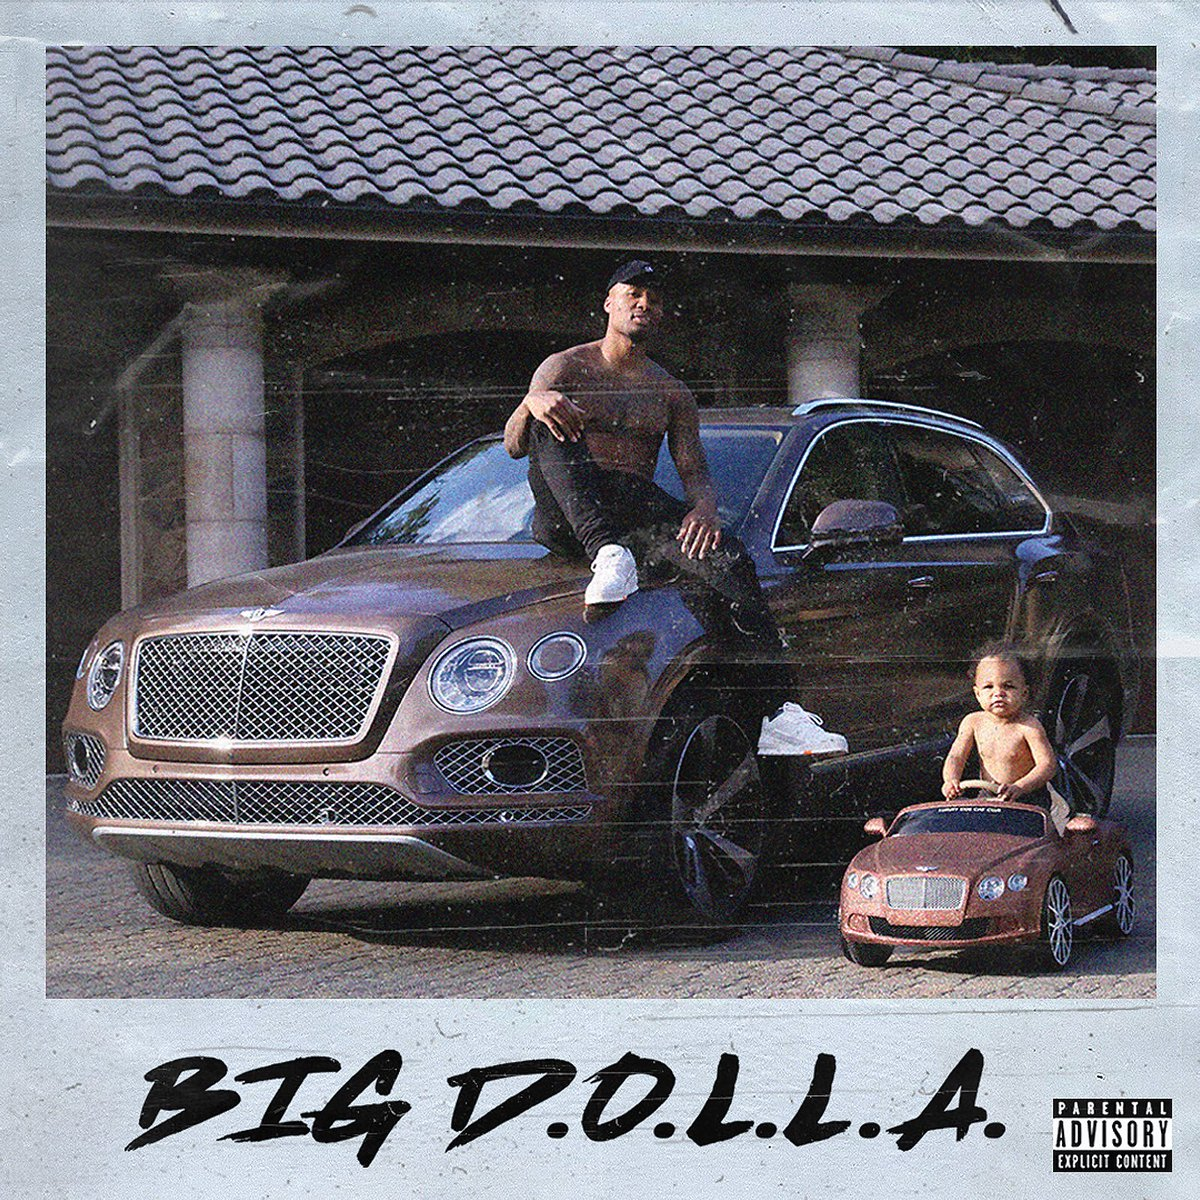 New album alert 🚨   BIG D.O.L.L.A.   Available 8/9 on all platforms! It's my 3rd album and my best. Make sure y'all go support on Friday!   Dame (D)ifferent (O)n (L)evels (L)ord (A)llowed  #DameDOLLA #BigDOLLA #FrontPageMusic @FrontPageMusic